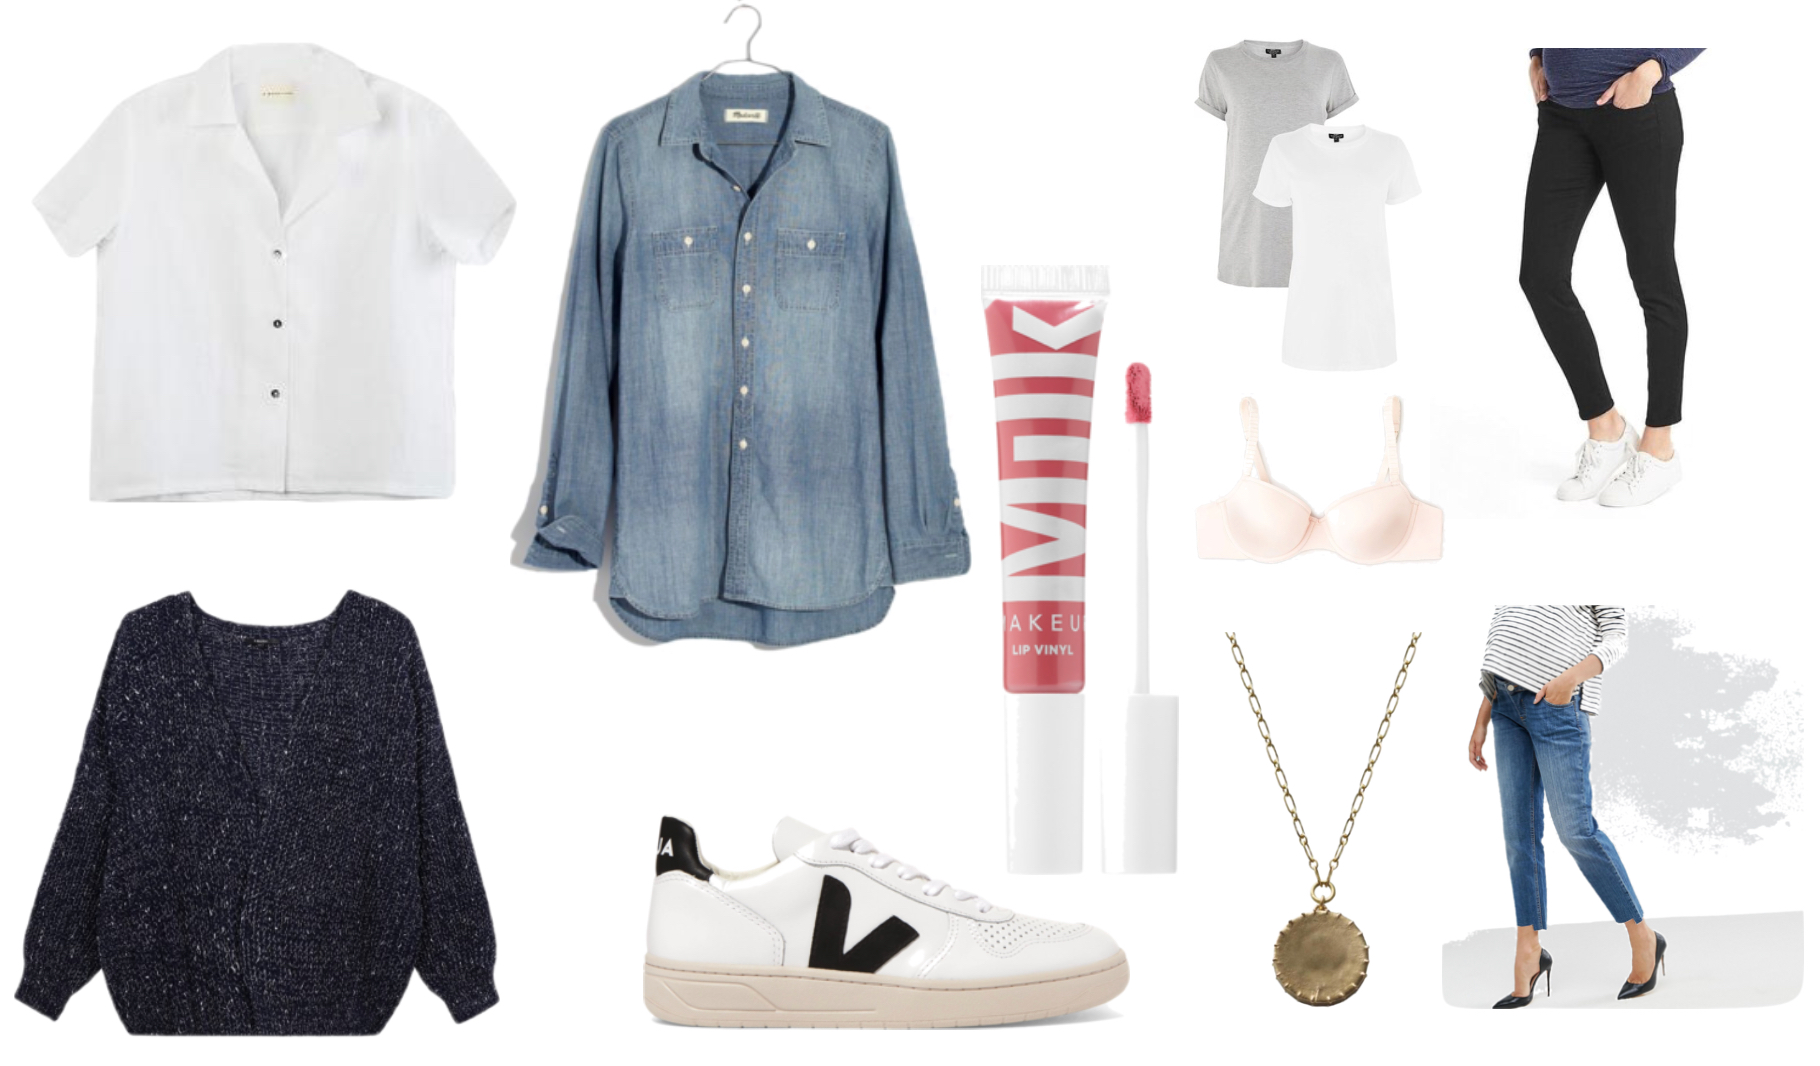 White linen shirt , c hambray ,  Lip gloss ,  T-shirt two pack ,  black jeans ,  blue jeans ,  Pendant ,  World's most comfortable bra ,  Sneakers ,  Cardigan